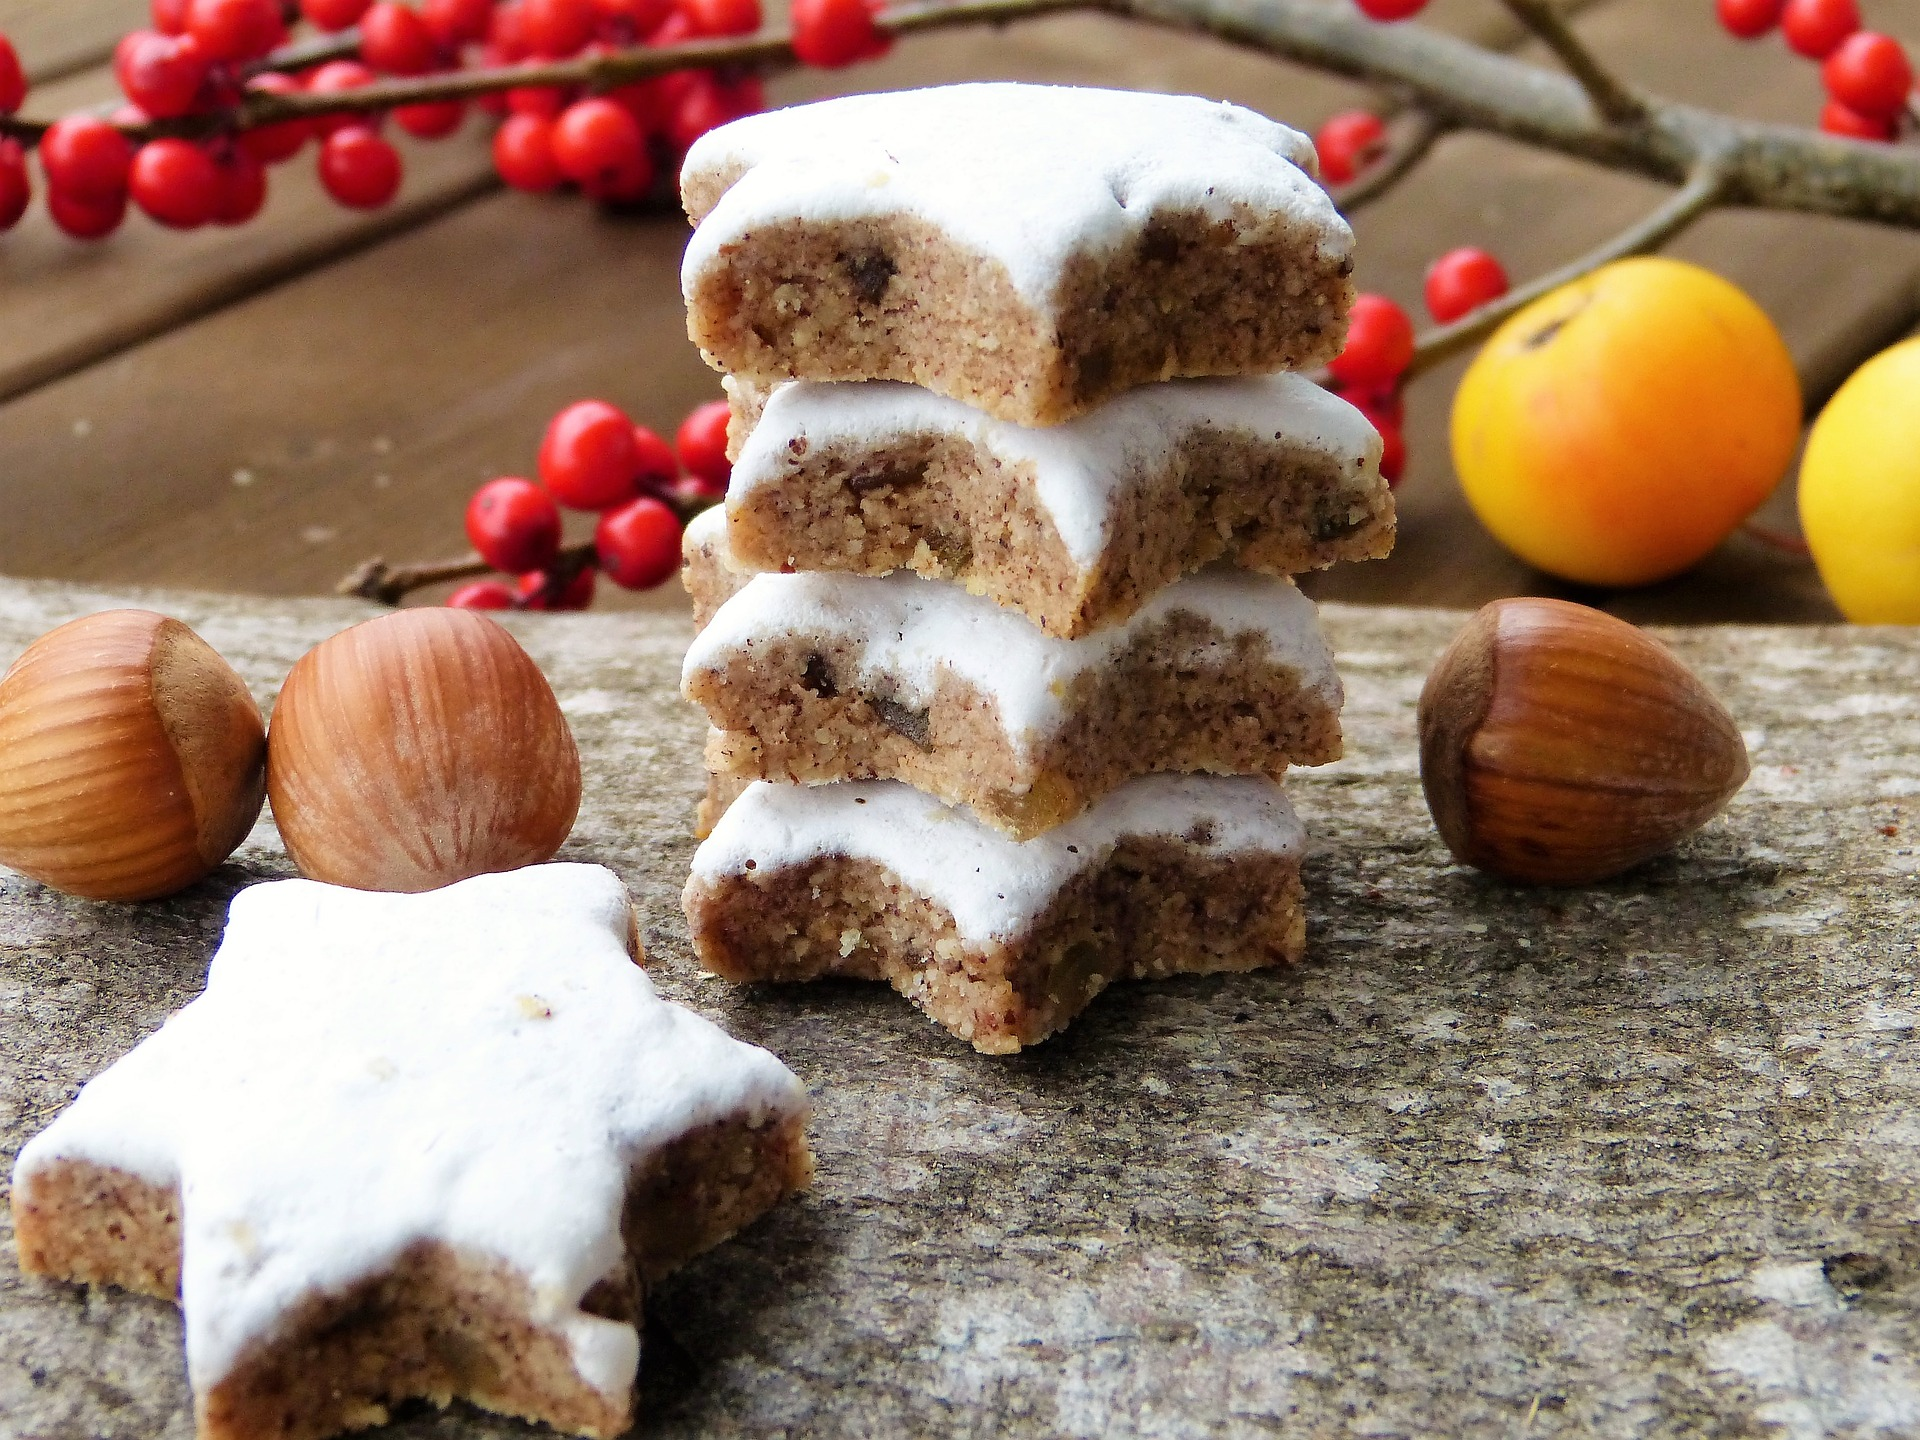 Christmas in Switzerland: cinnamon stars